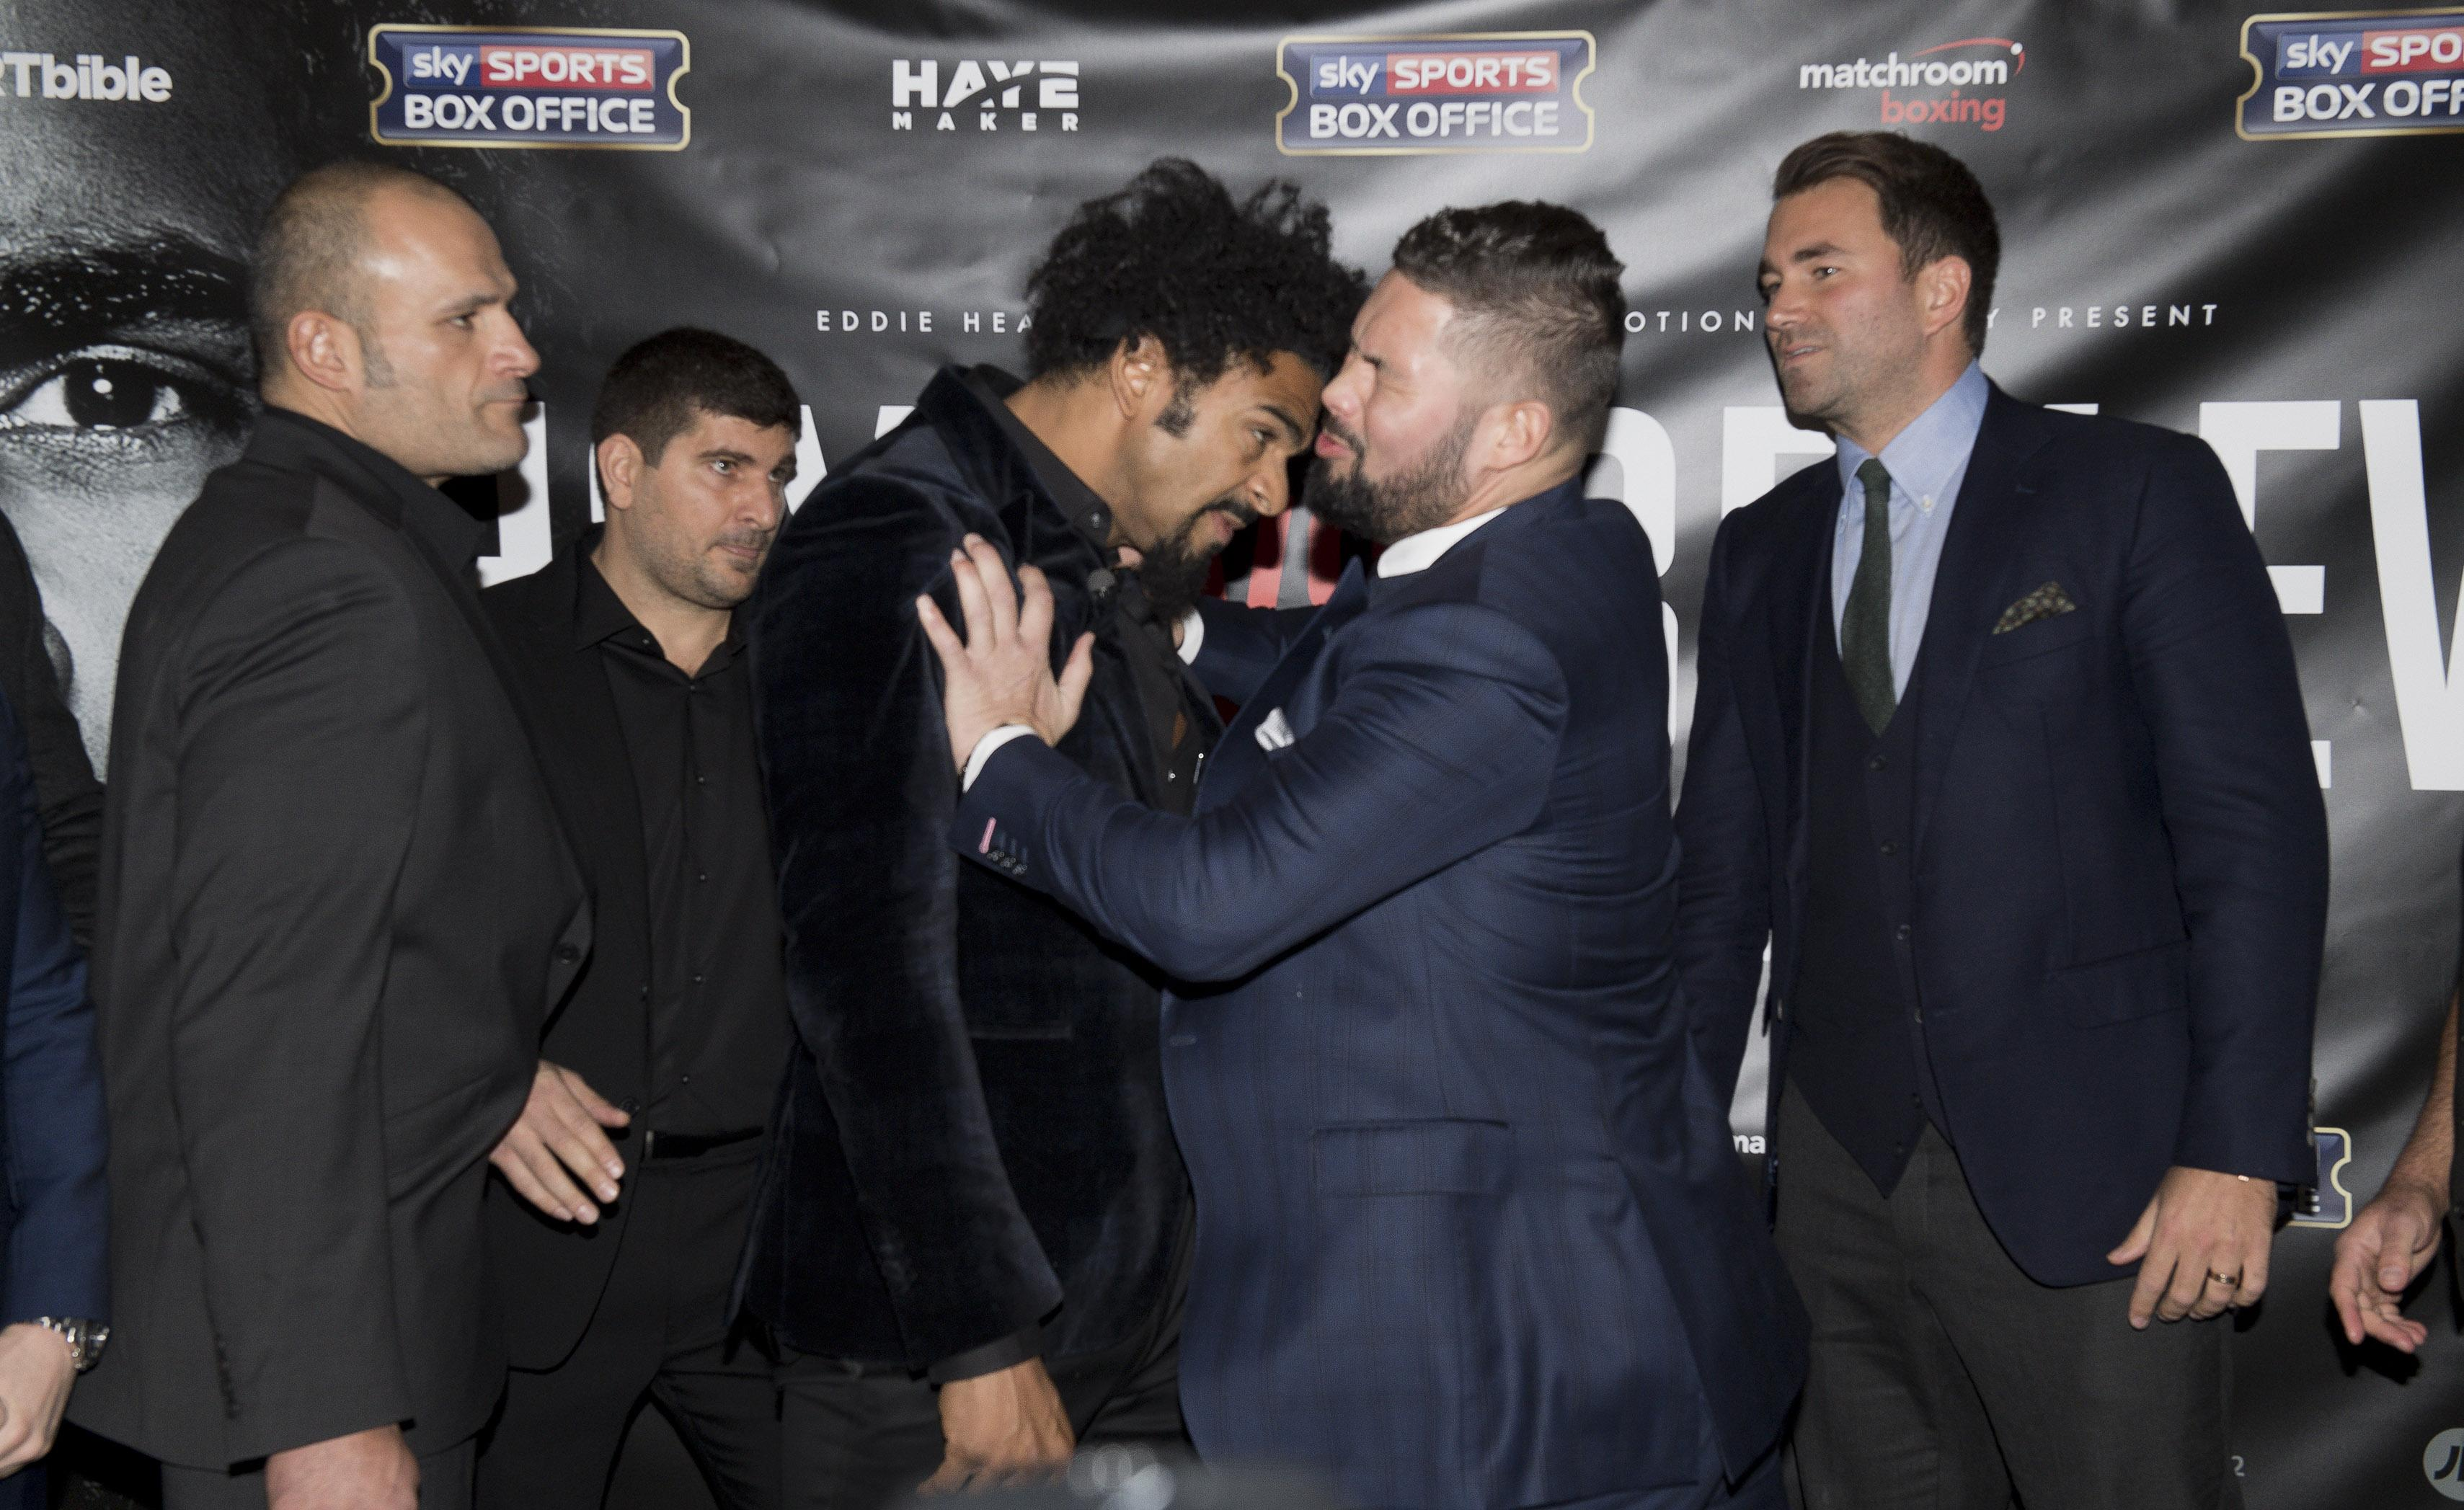 The two clashed at pre-fight press conferences with Haye even punching Bellew at one